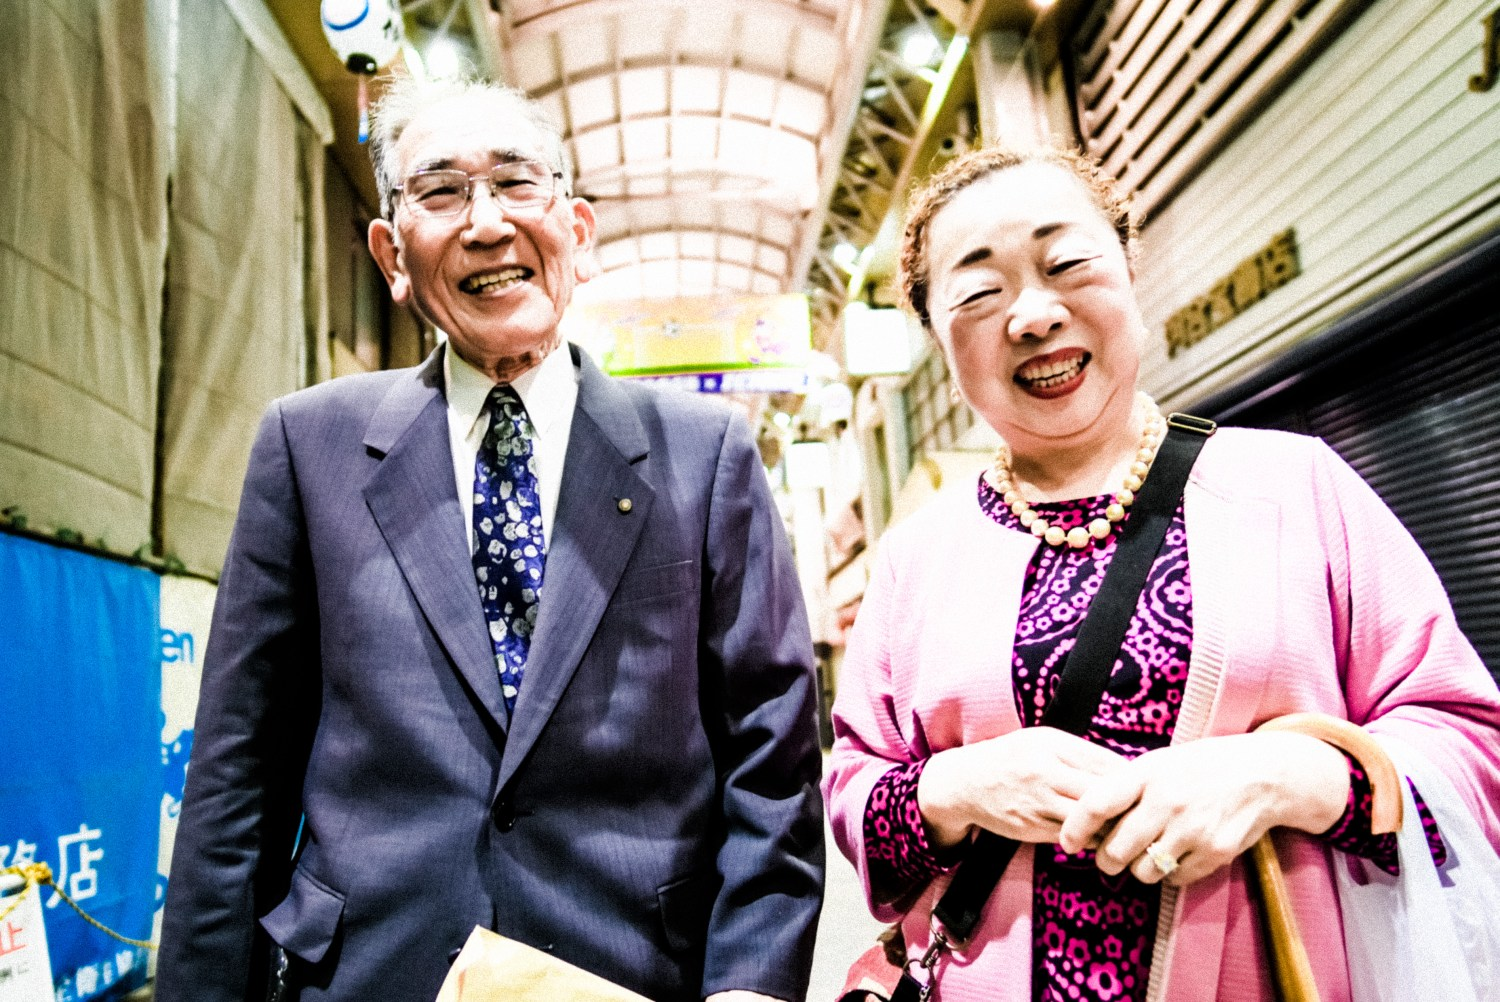 Old Japanese Couple smiling and laughing. Tokyo, 2018